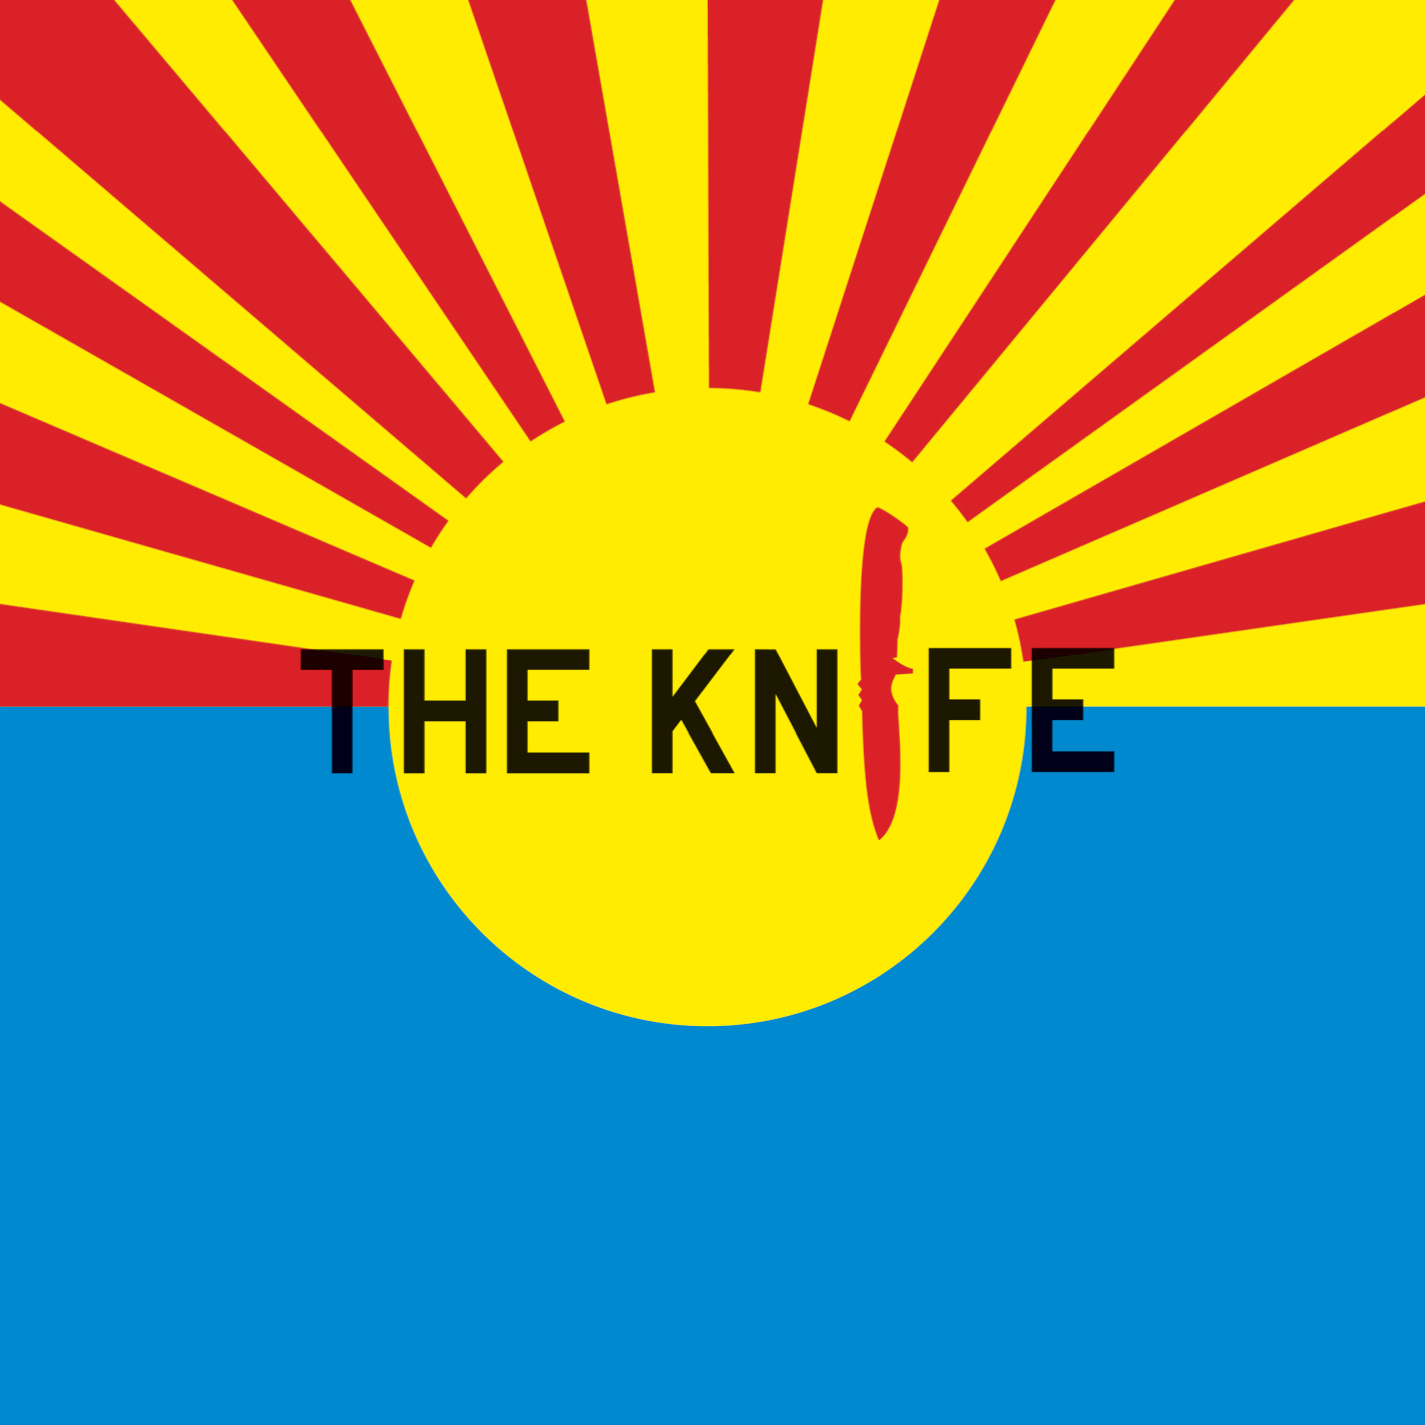 The Knife - CD